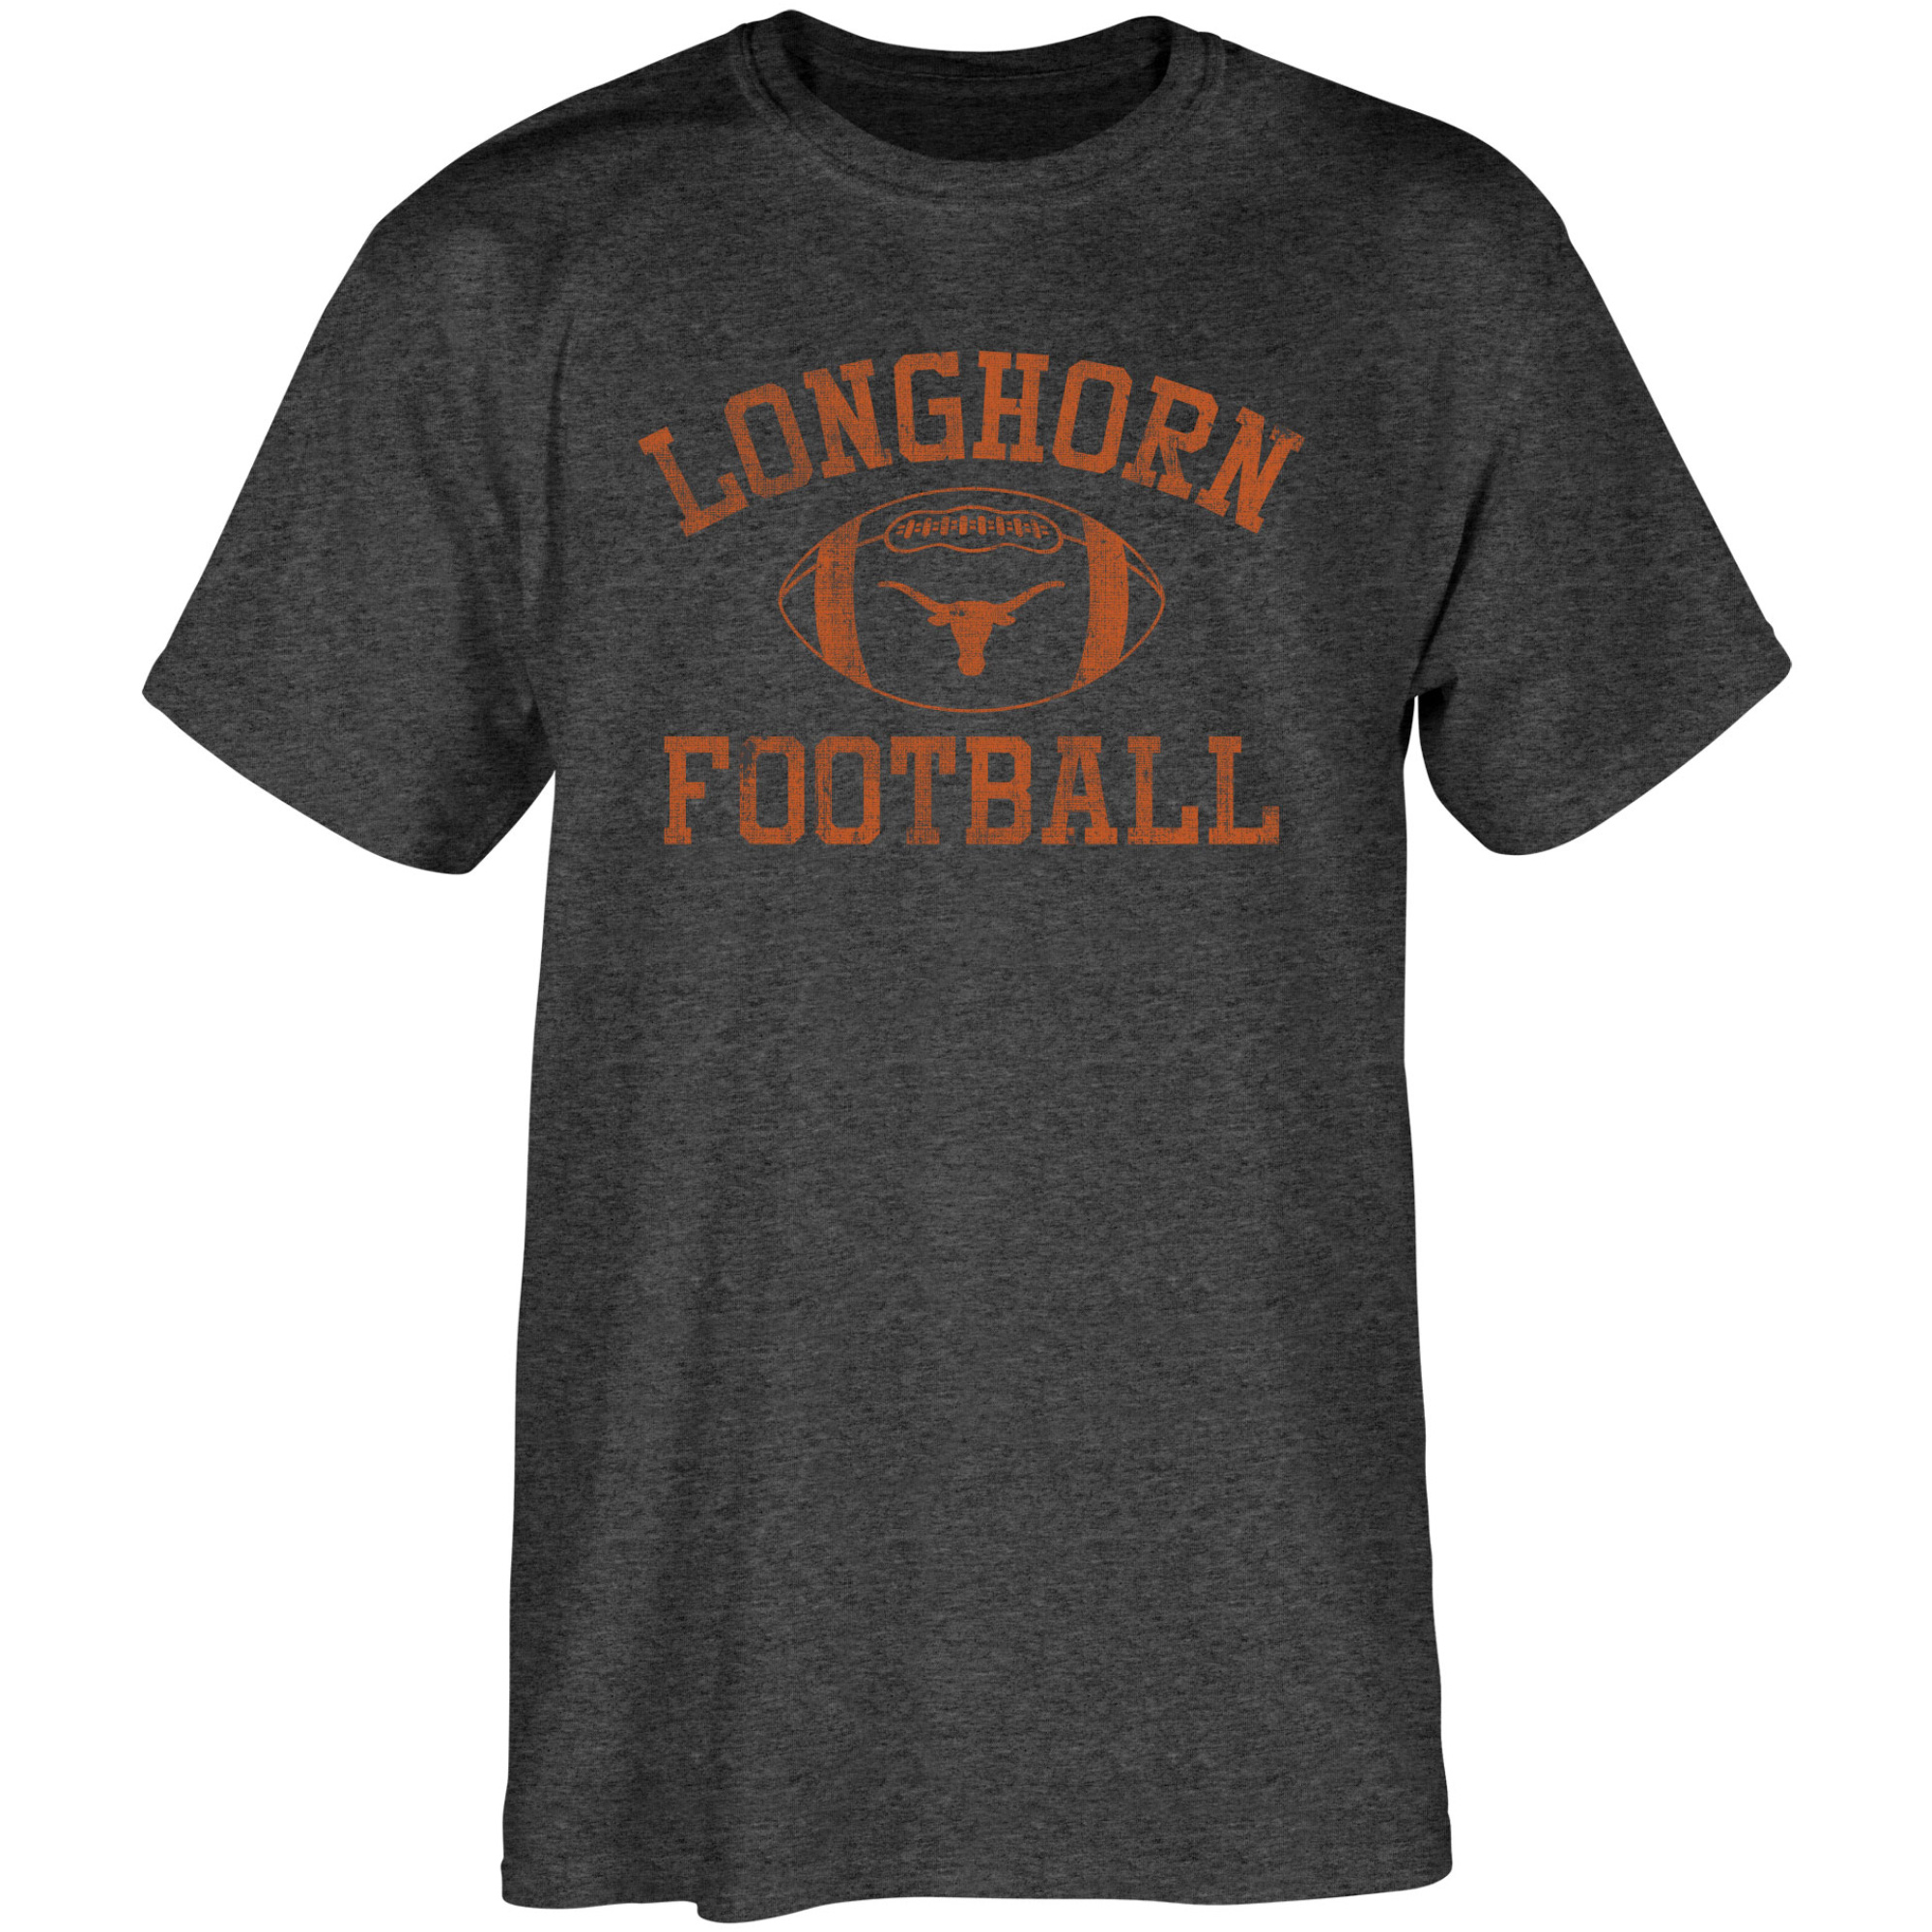 Men's Heathered Black Texas Longhorns Old Authentic Distressed T-Shirt